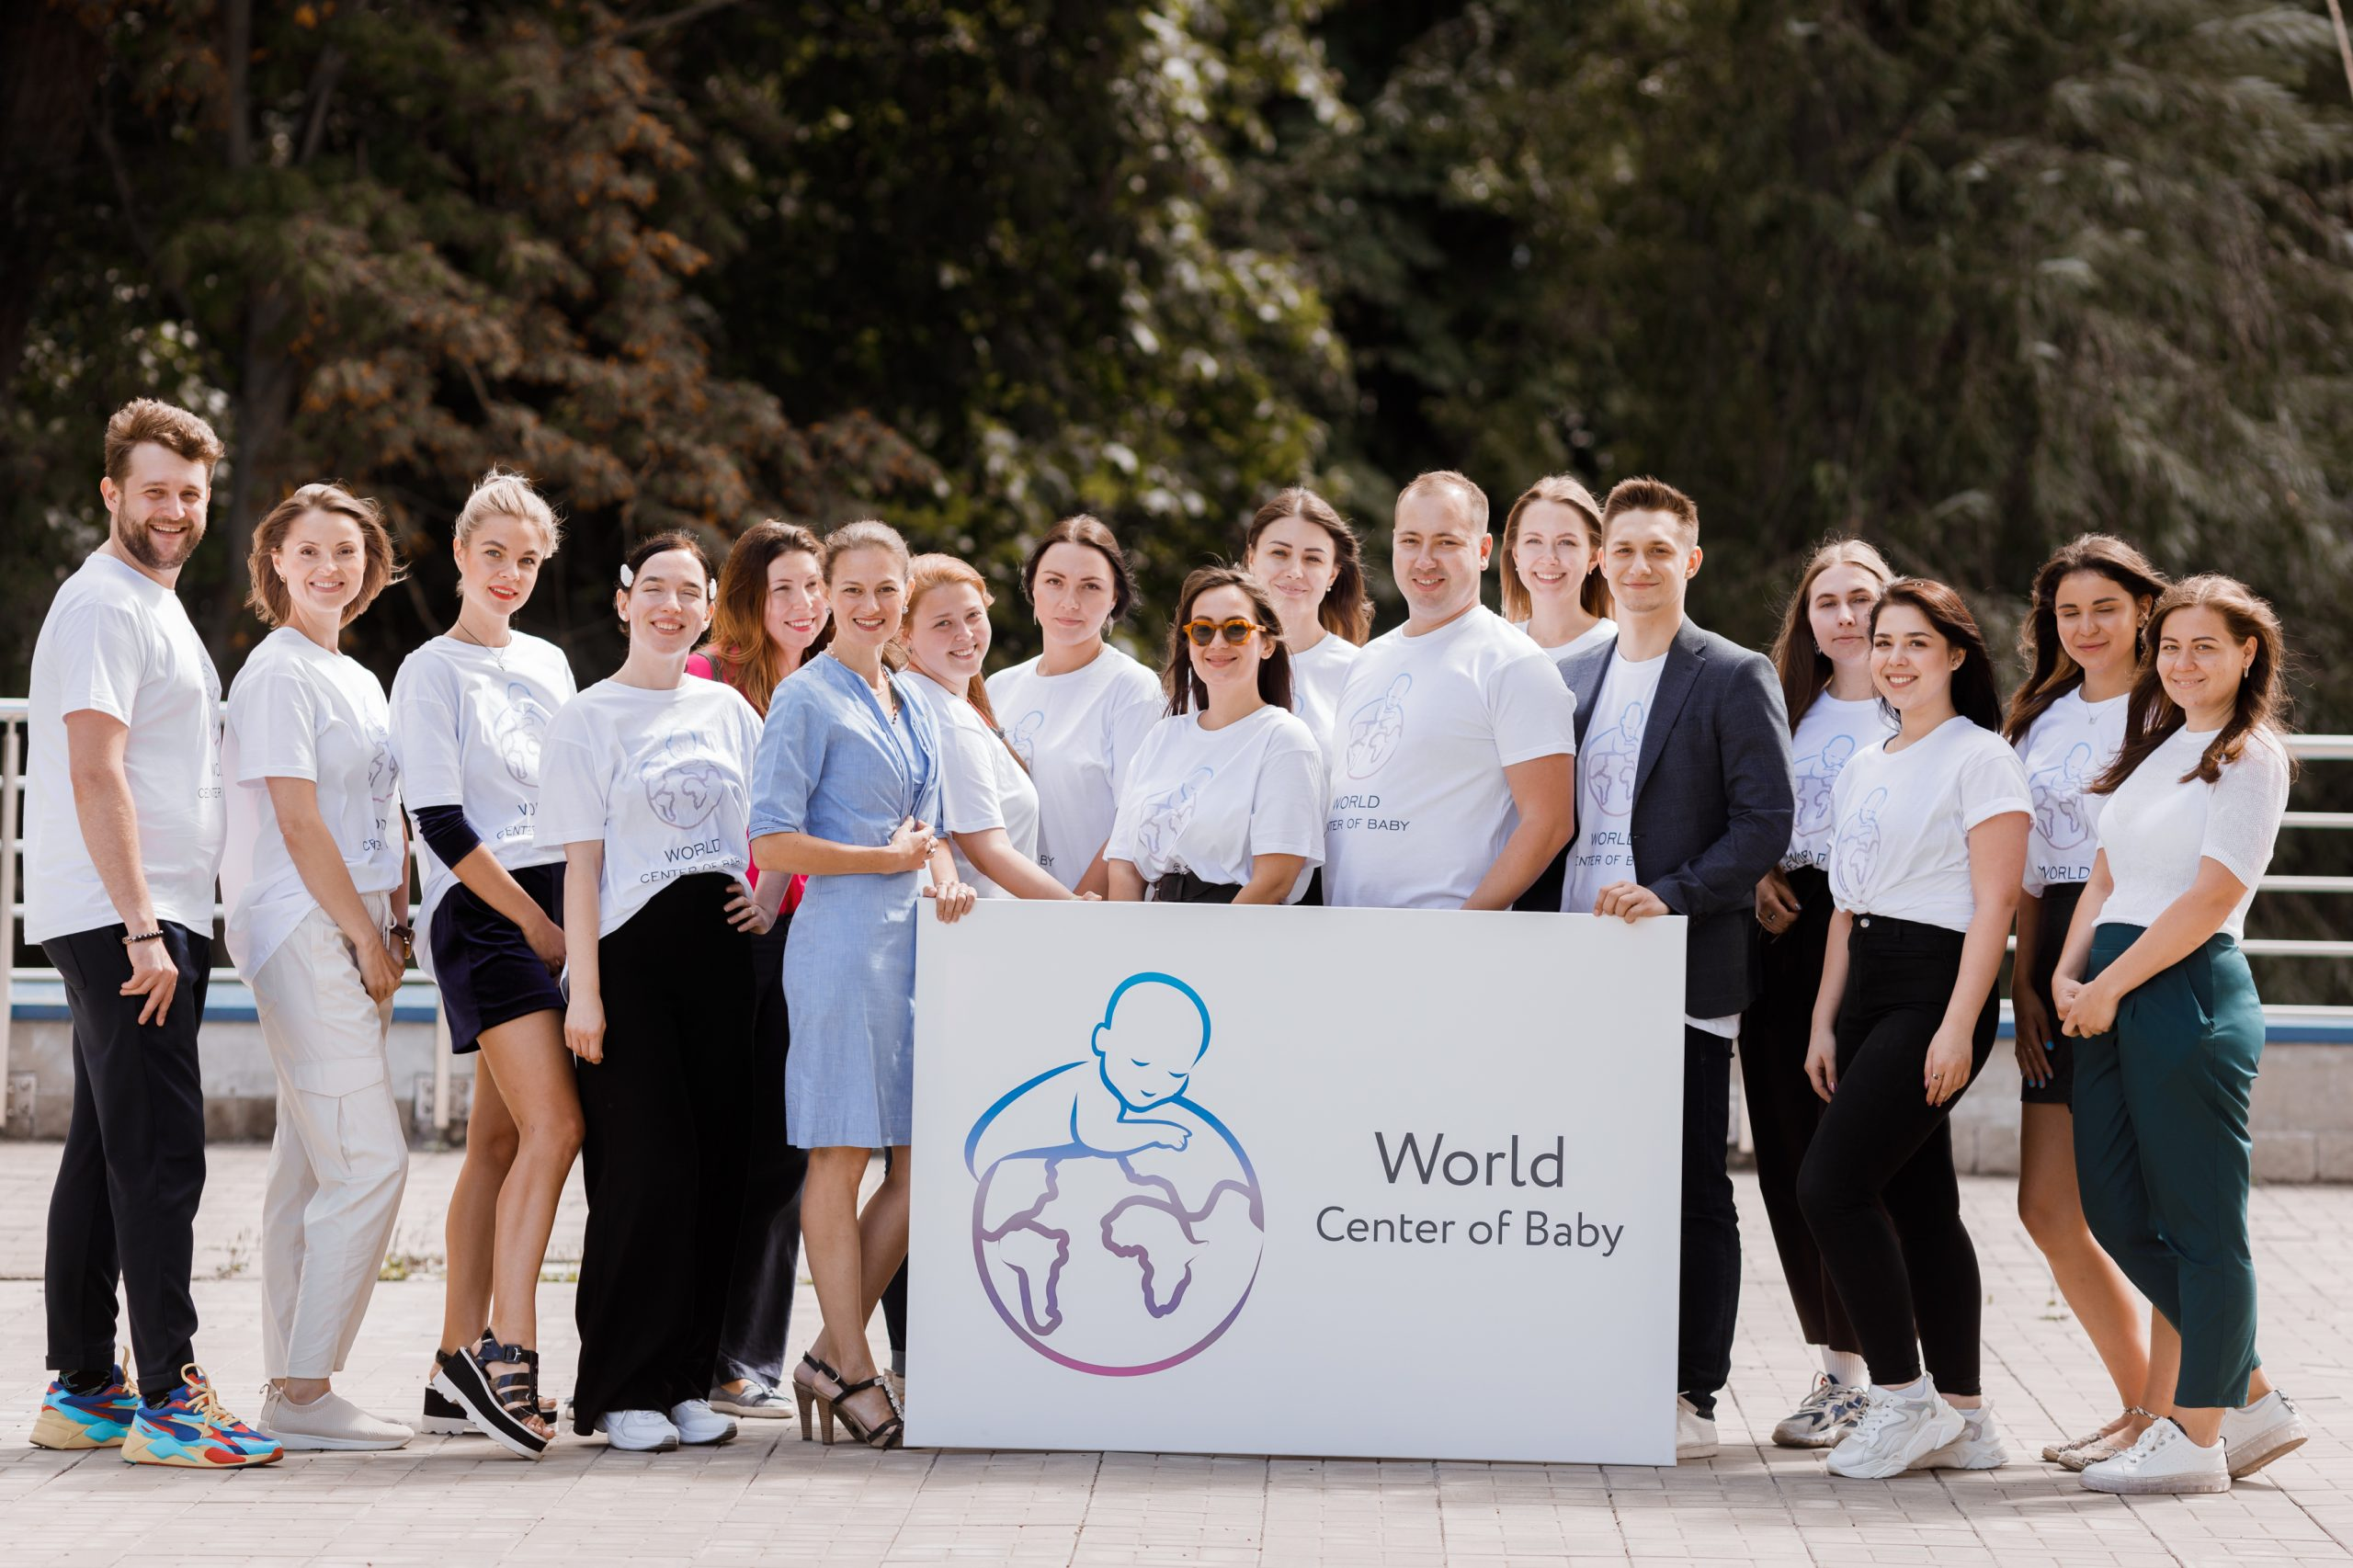 Une agence de maternité de substitution en Ukraine World Center of Baby